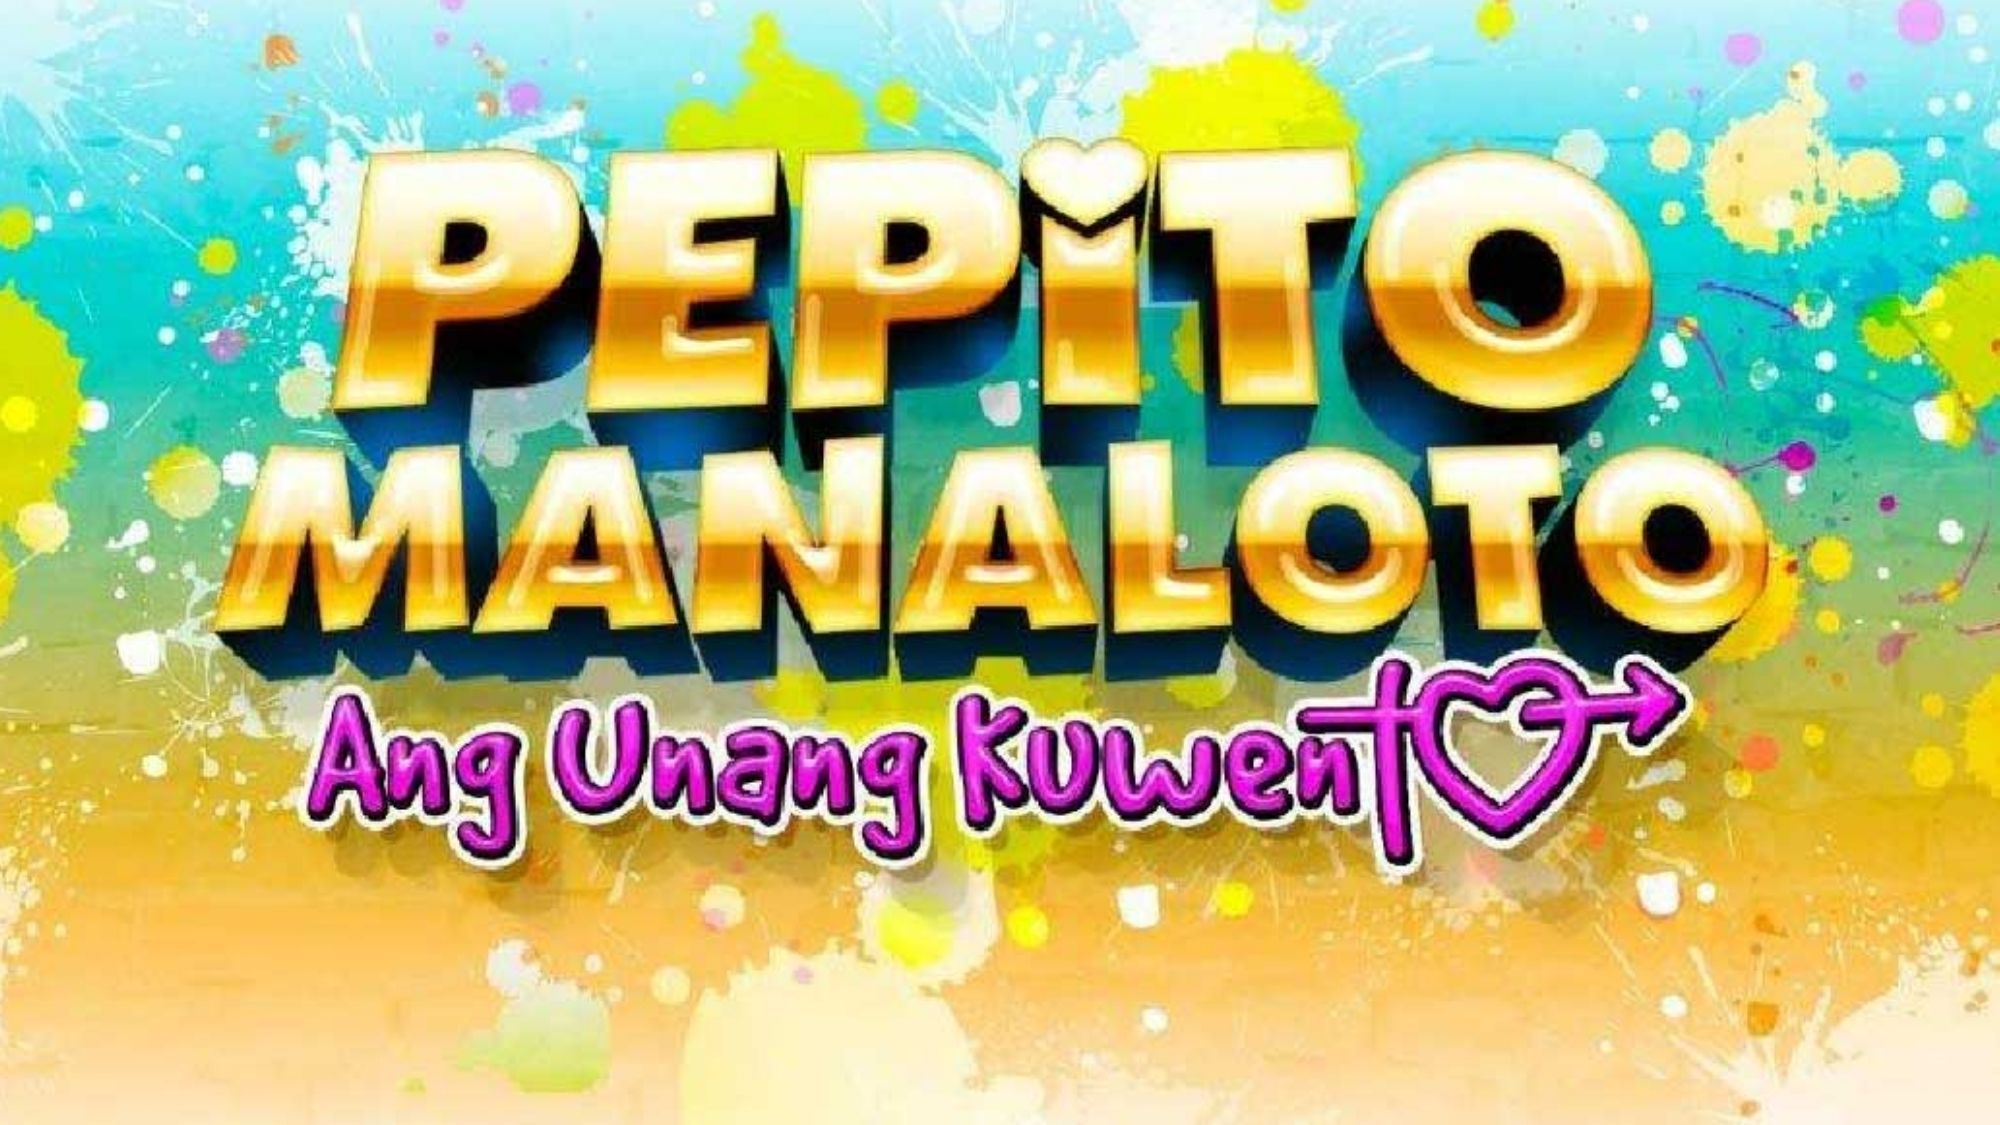 'Pepito Manaloto' goes back to the 80's with prequel 'Ang Unang Kwento' photo from Daily Guardian